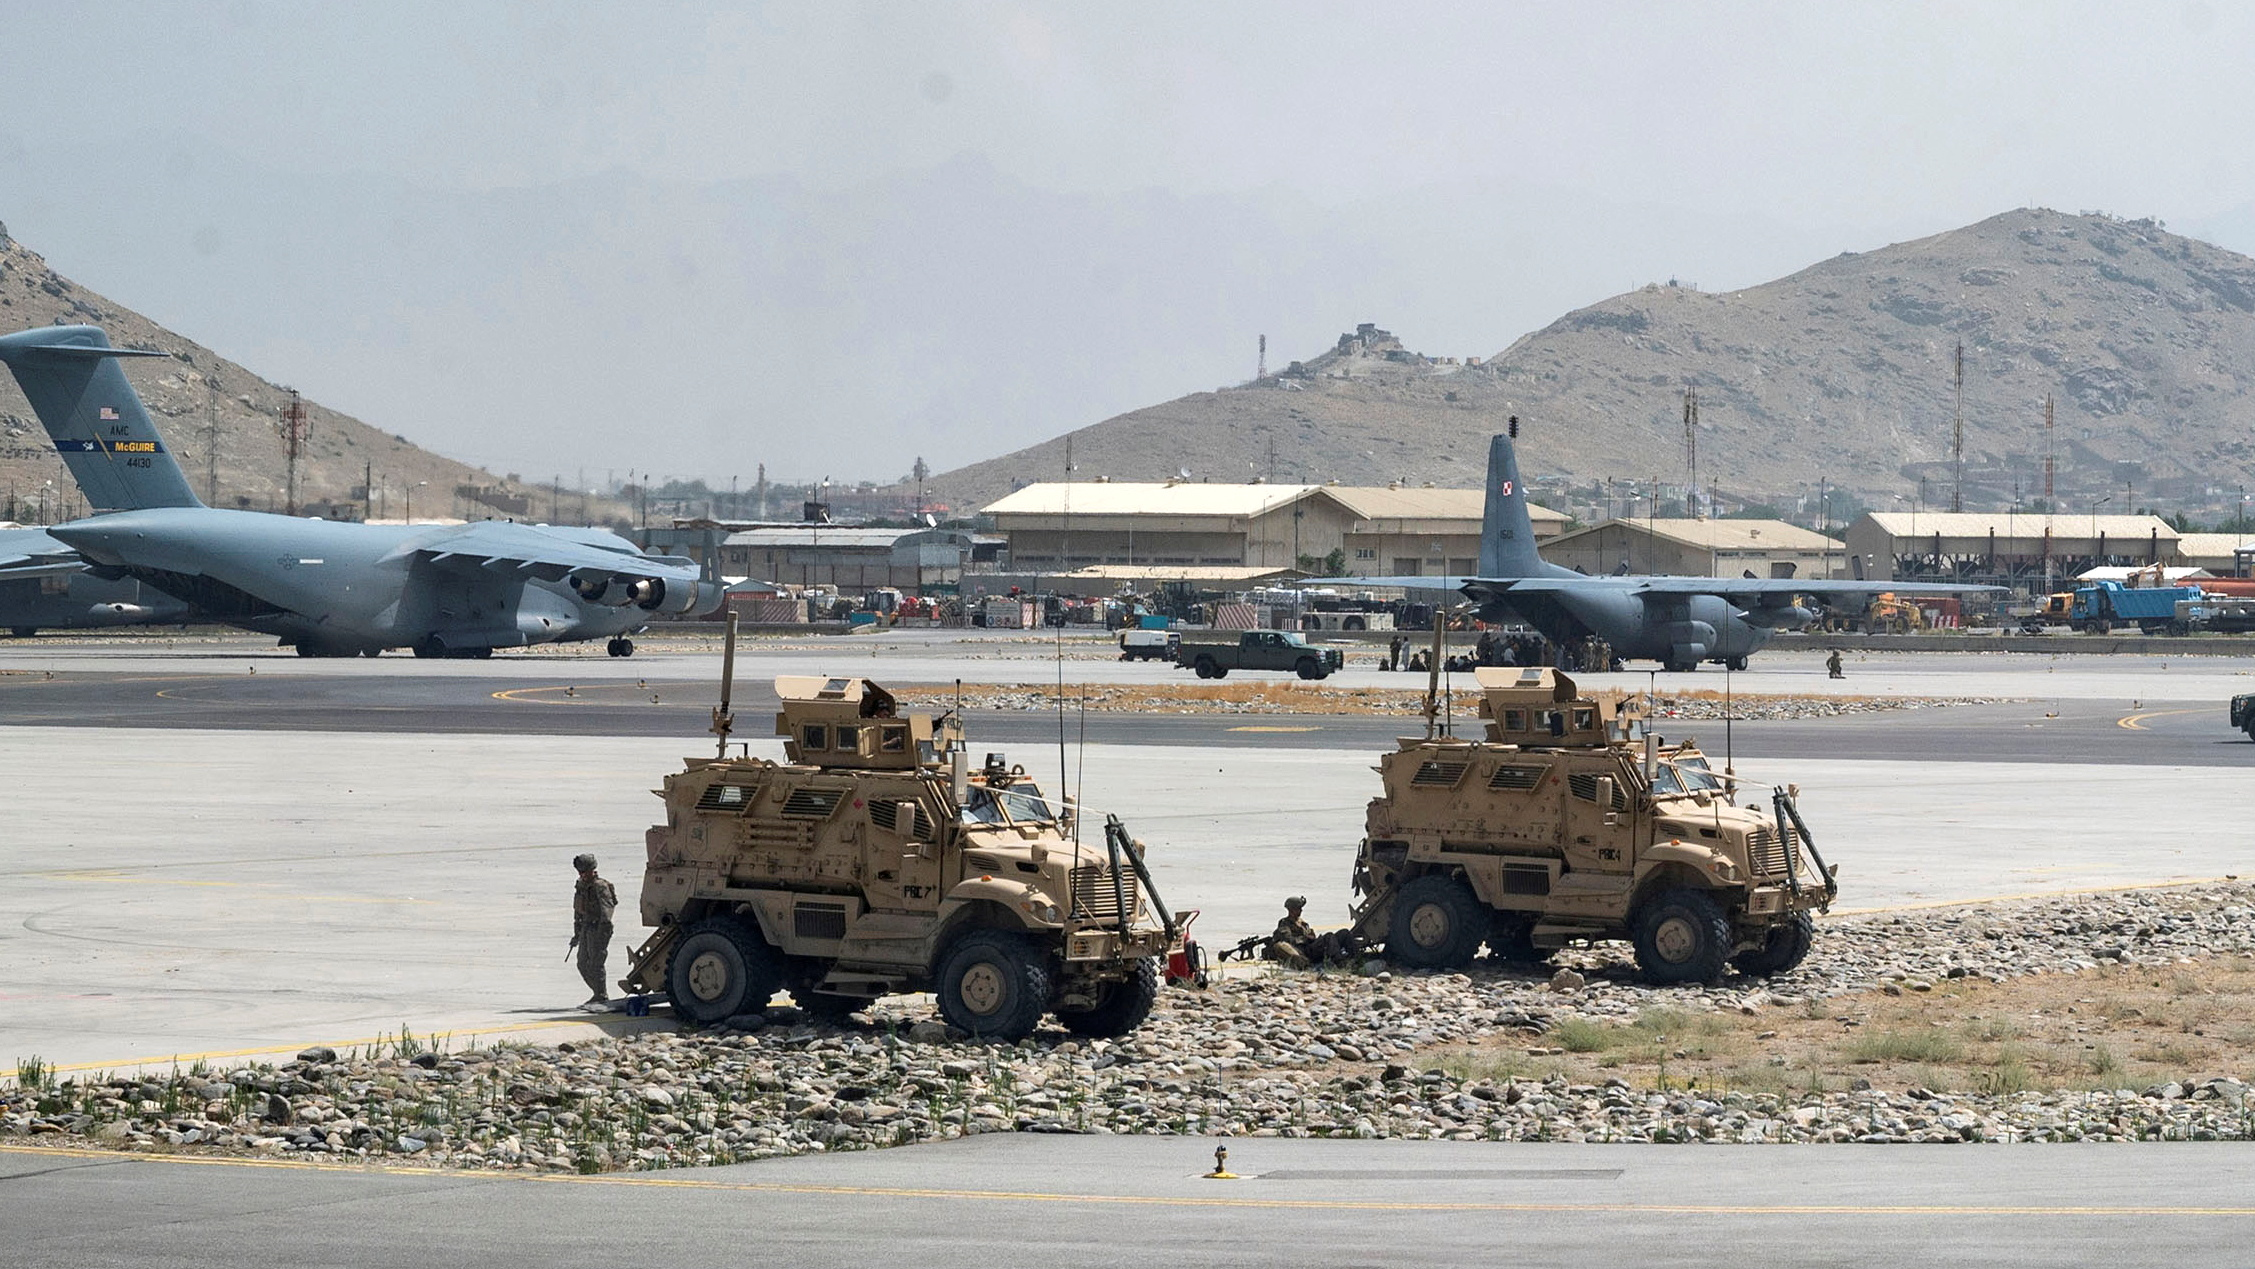 U.S. Army soldiers assigned to the 82nd Airborne Division patrol Hamid Karzai International Airport in Kabul, Afghanistan August 17, 2021. Picture taken August 17, 2021.  U.S. Air Force/Senior Airman Taylor Crul/Handout via REUTERS/File Photo